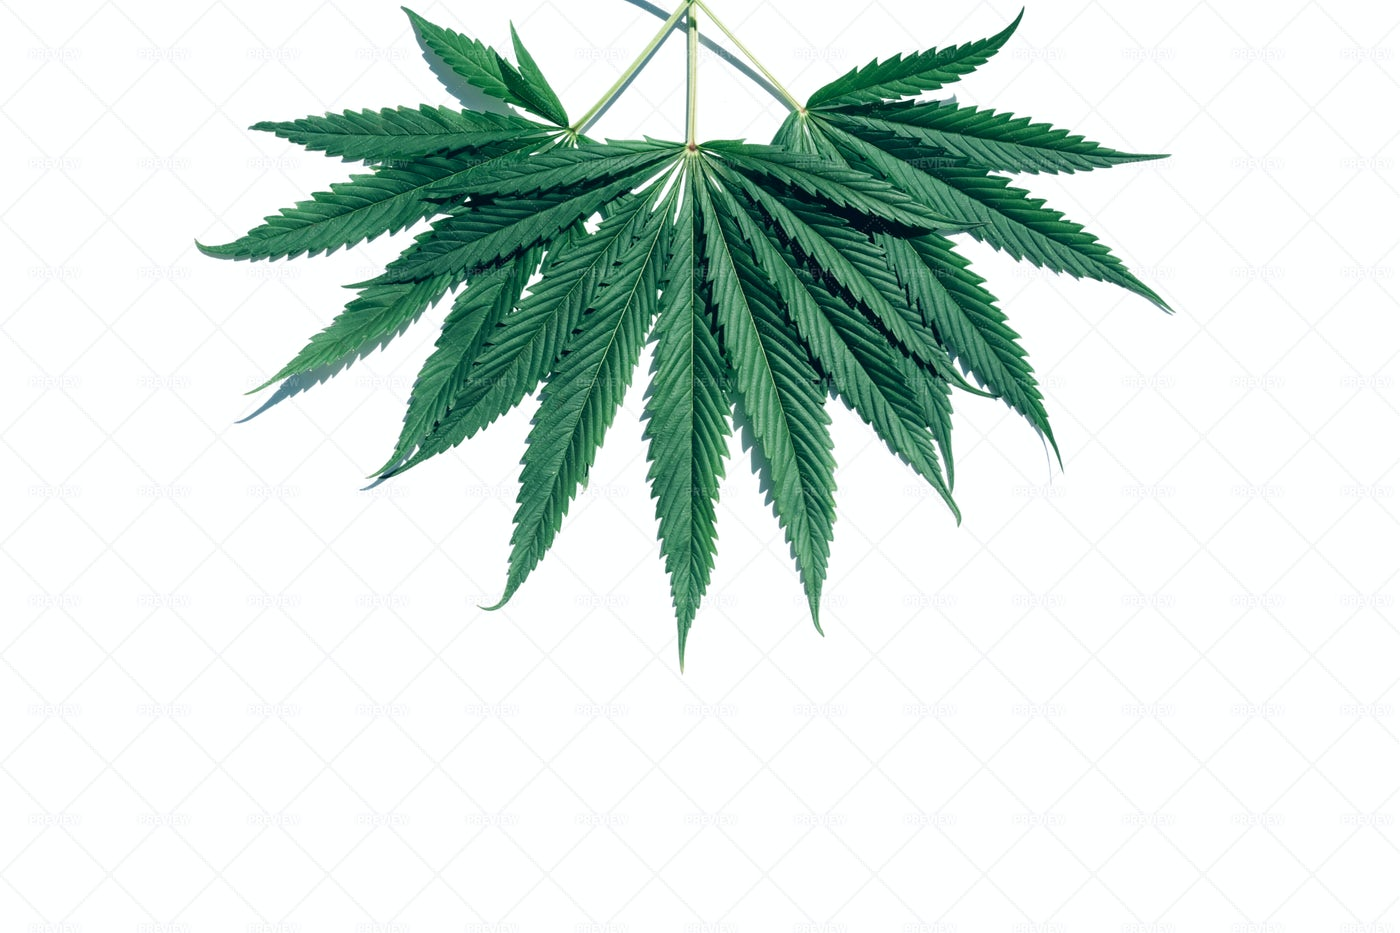 Hanging Marijuana Leaves: Stock Photos